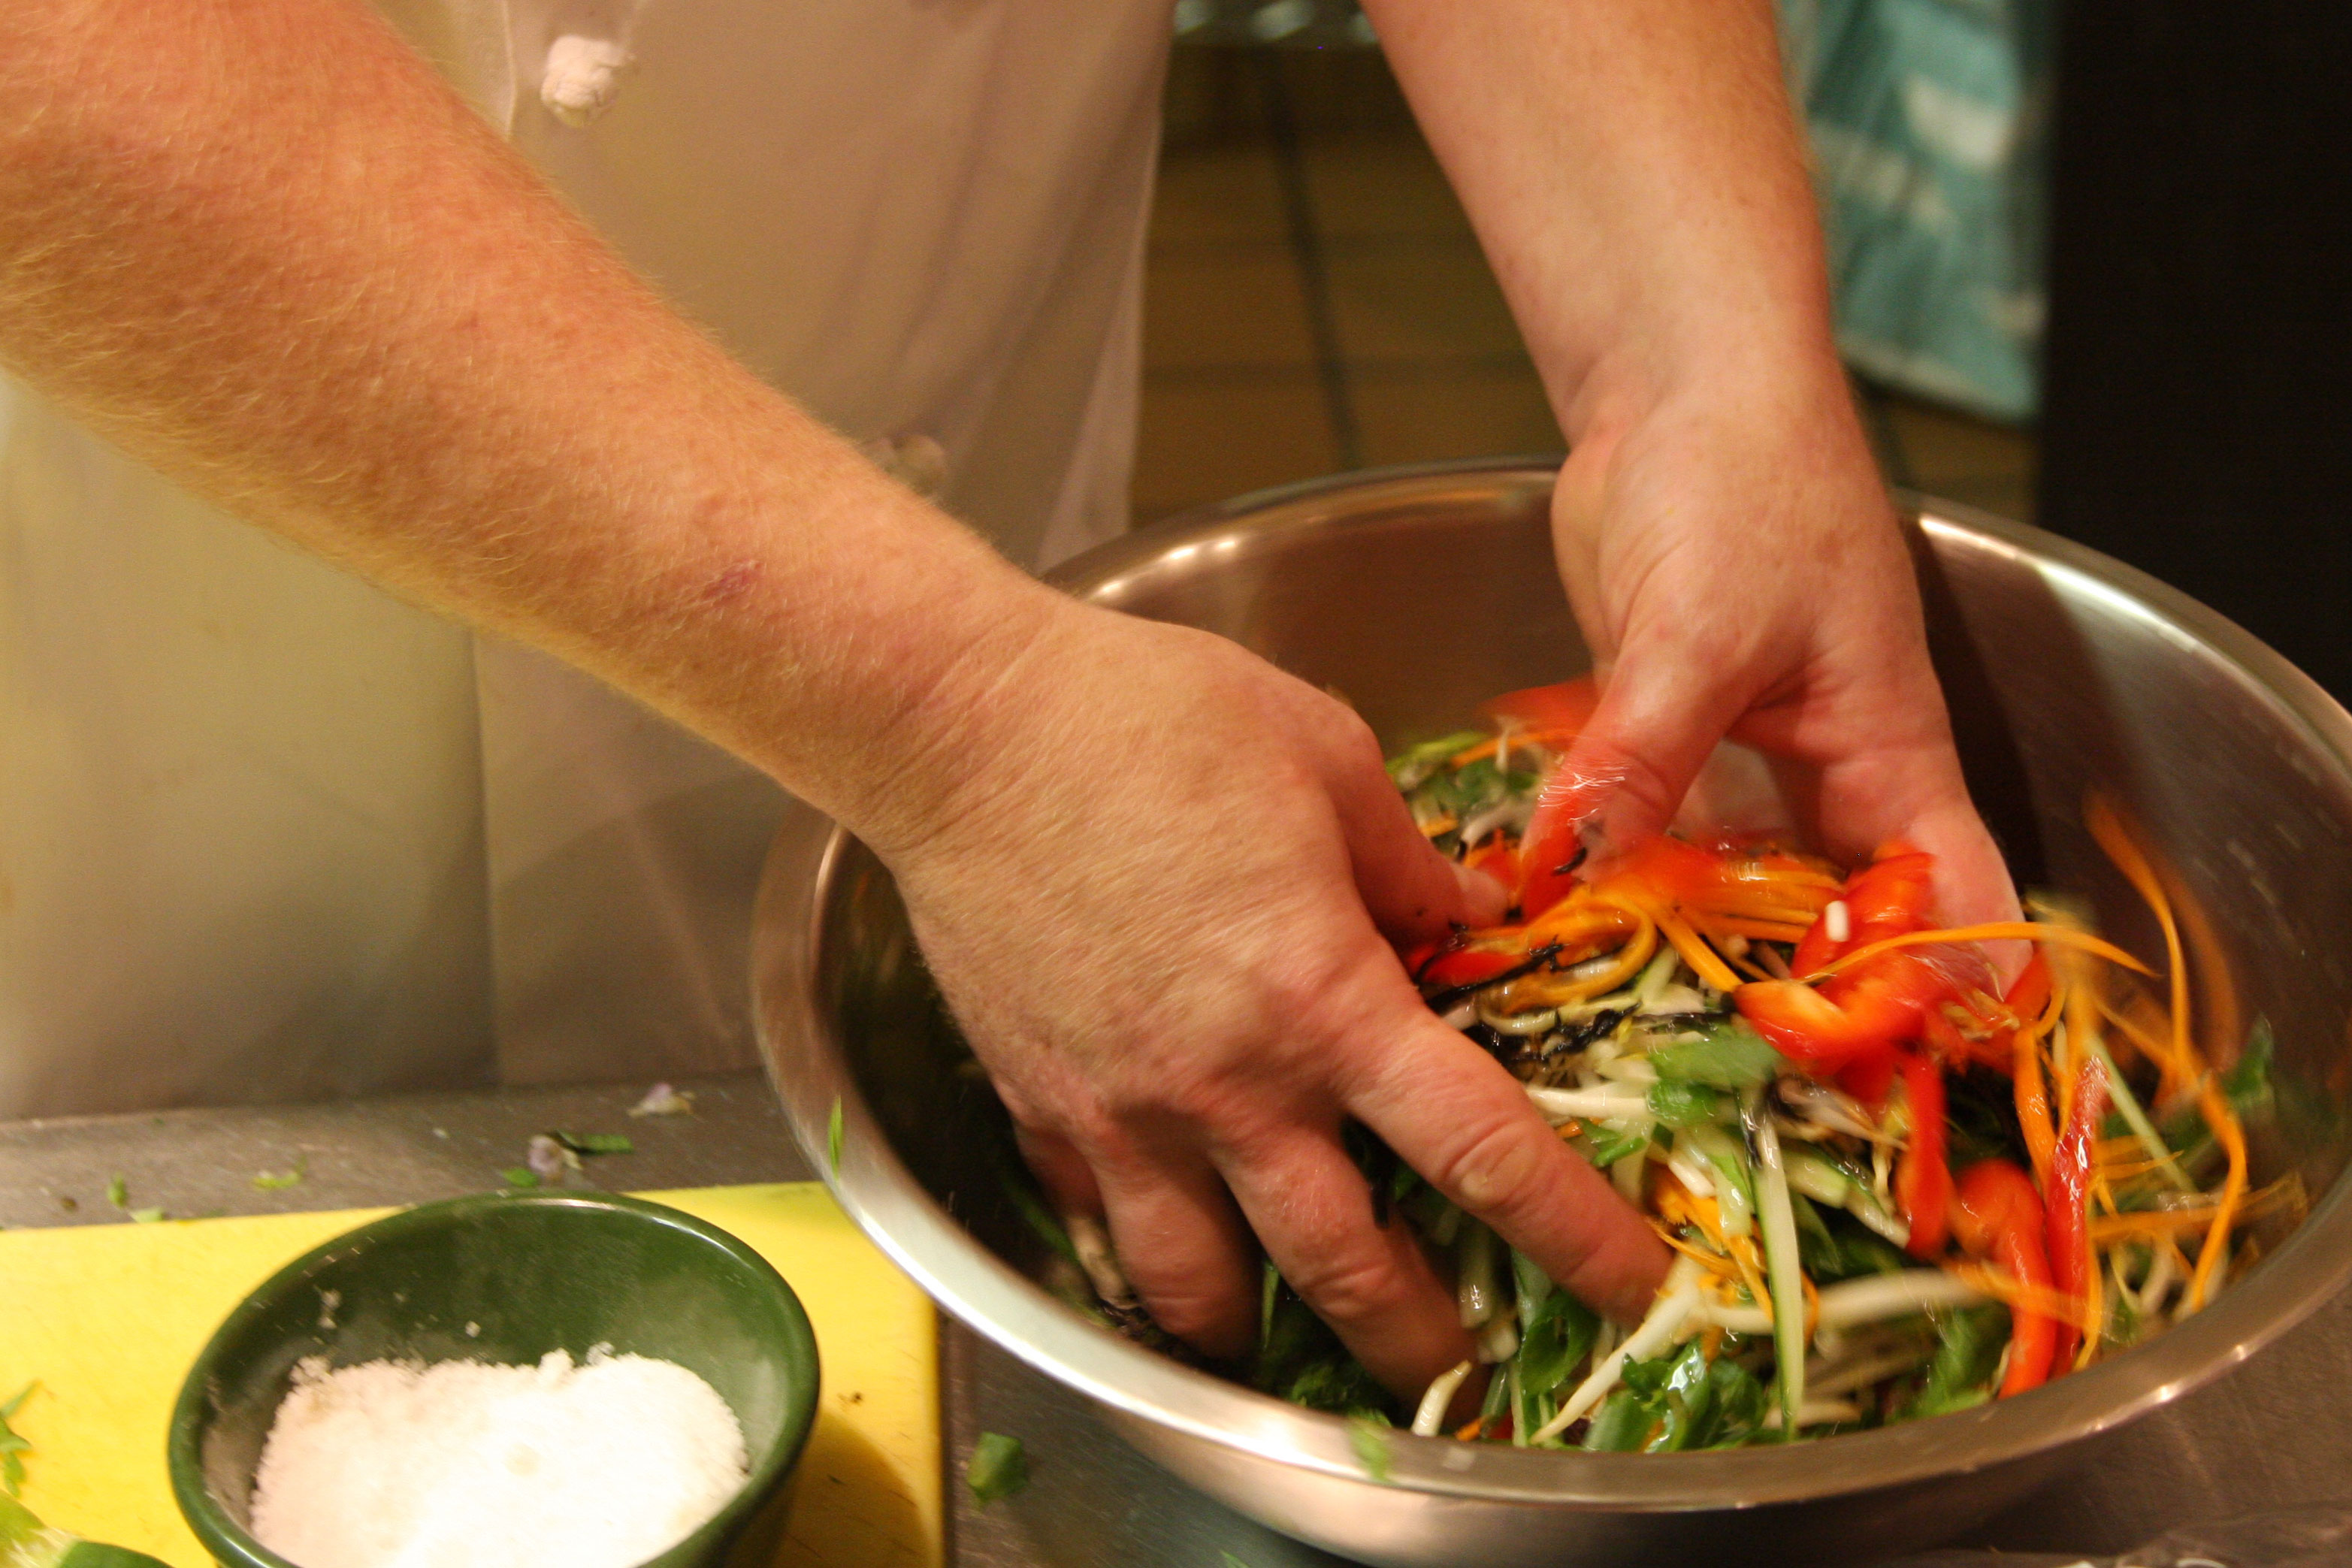 Mixing the Salad By Hand